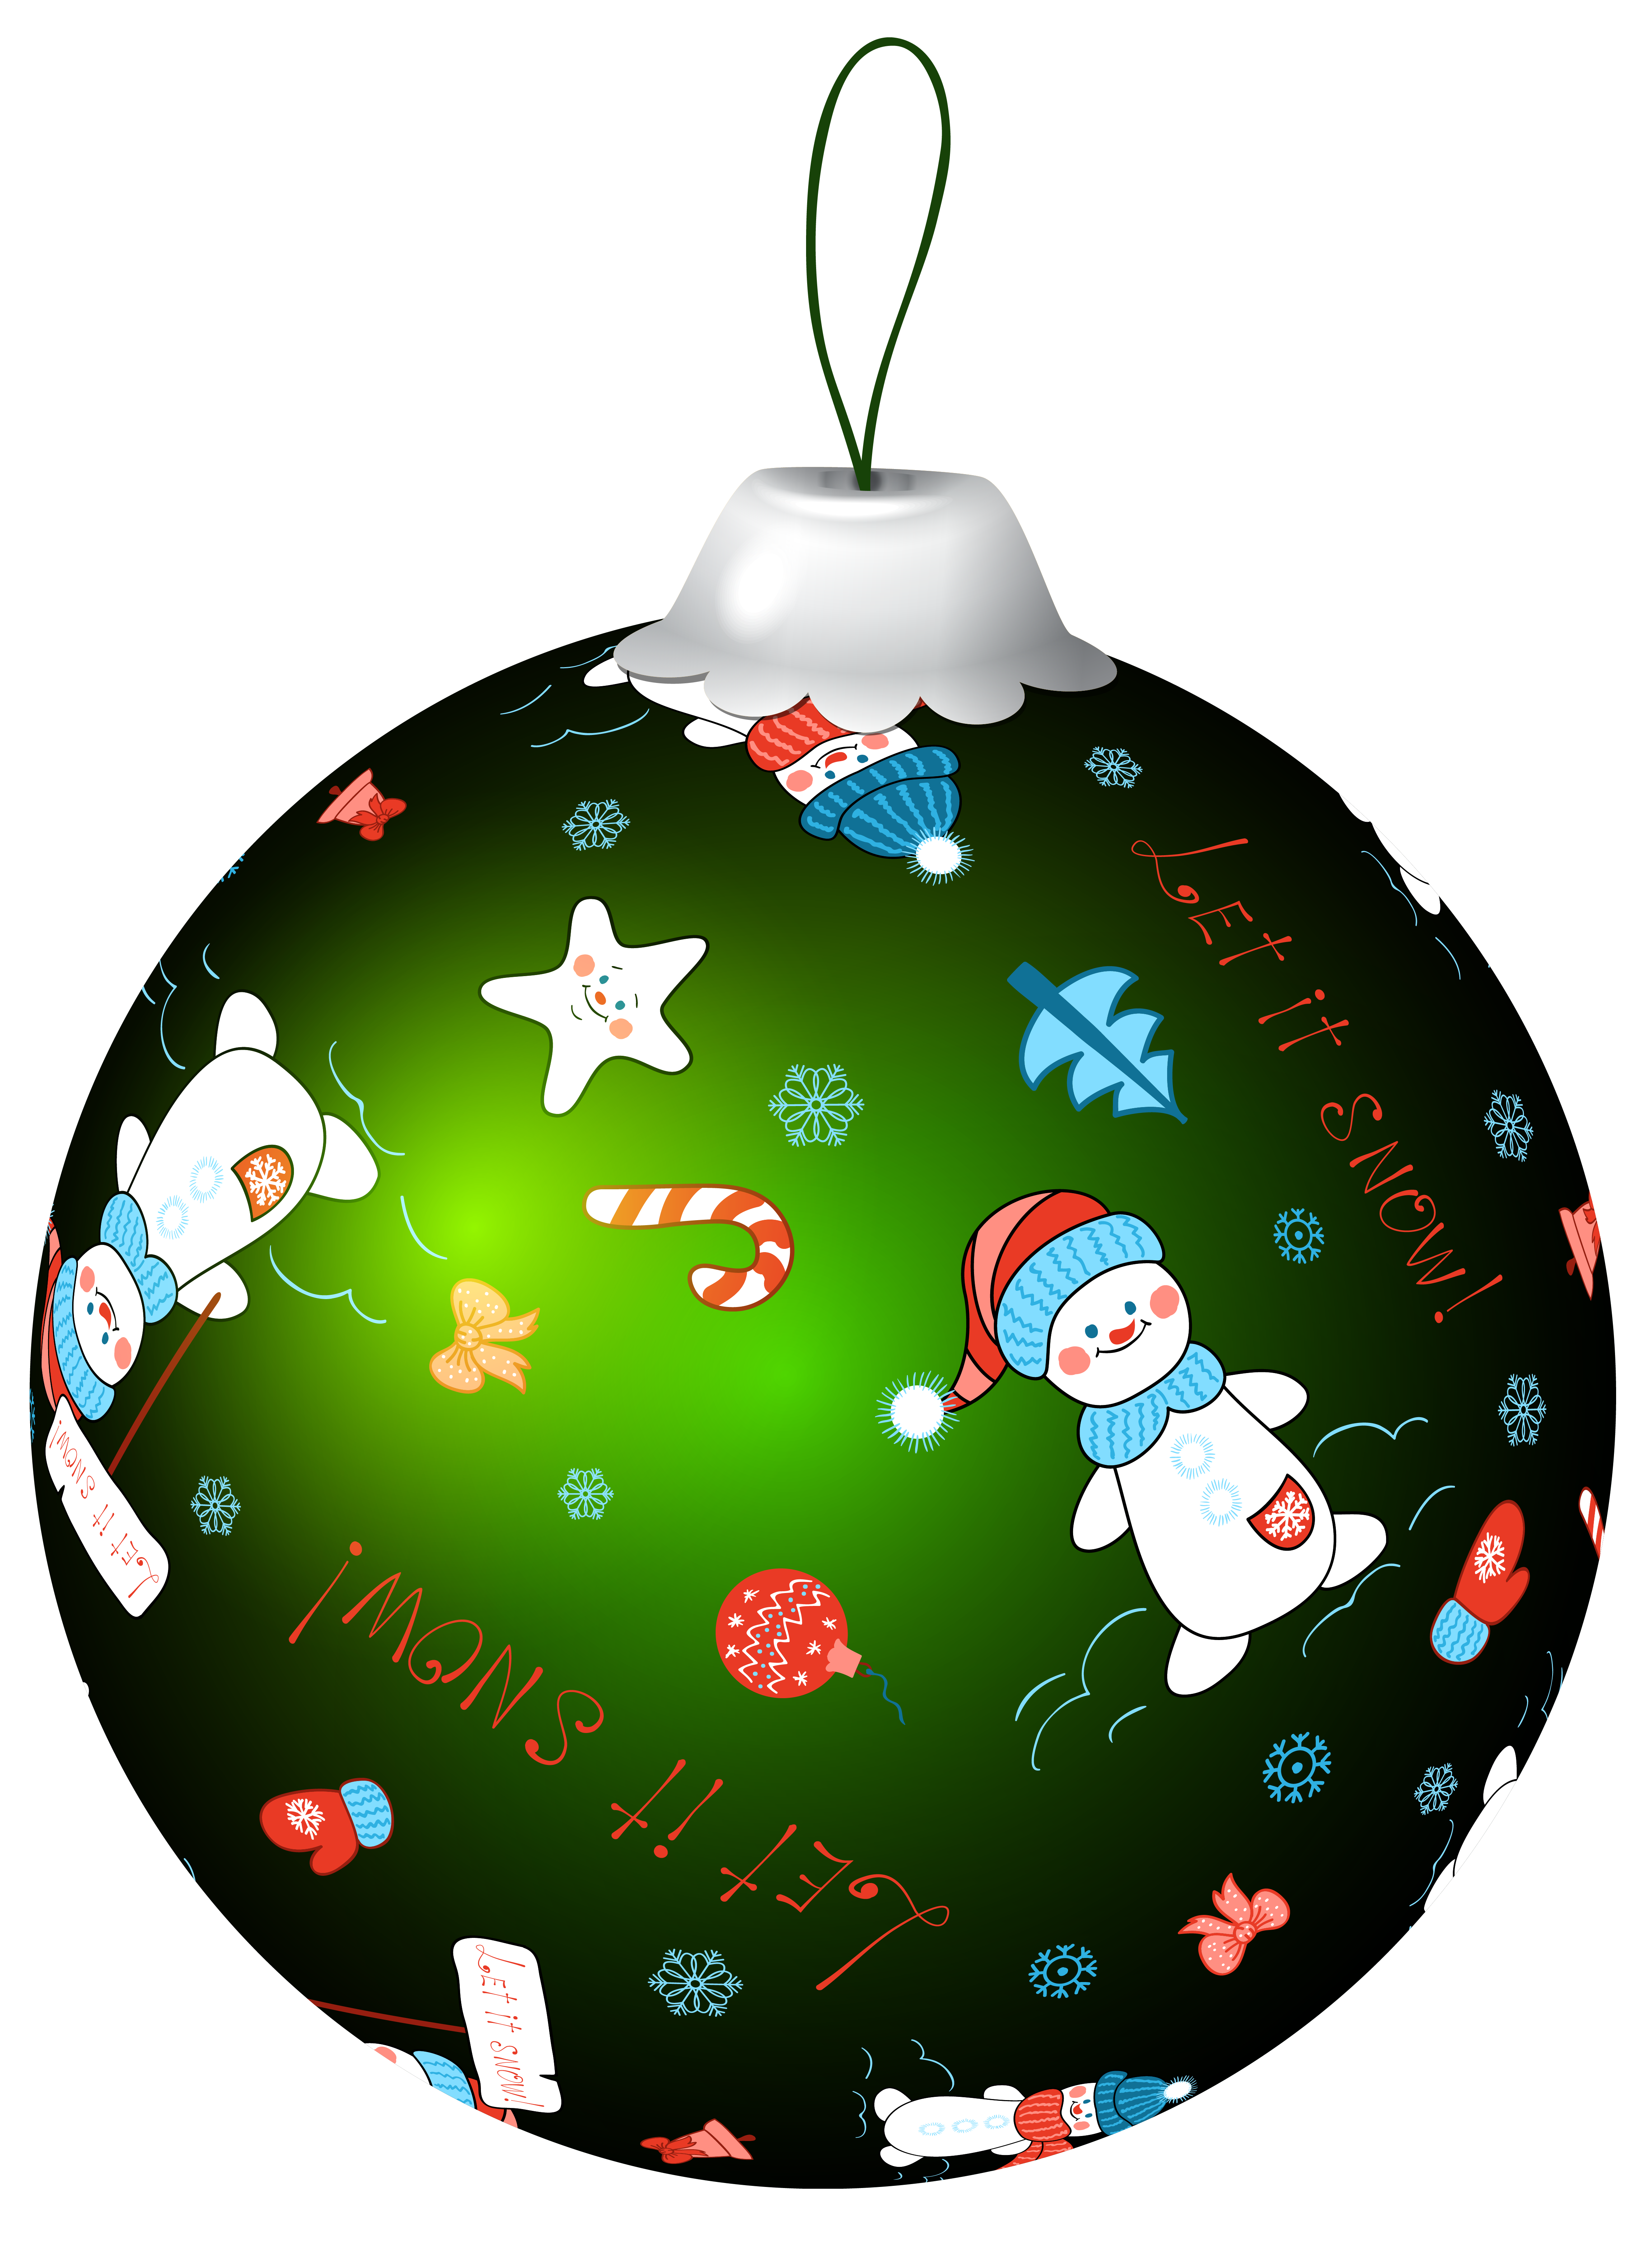 Clipart snowman ornament. Green christmas ball with